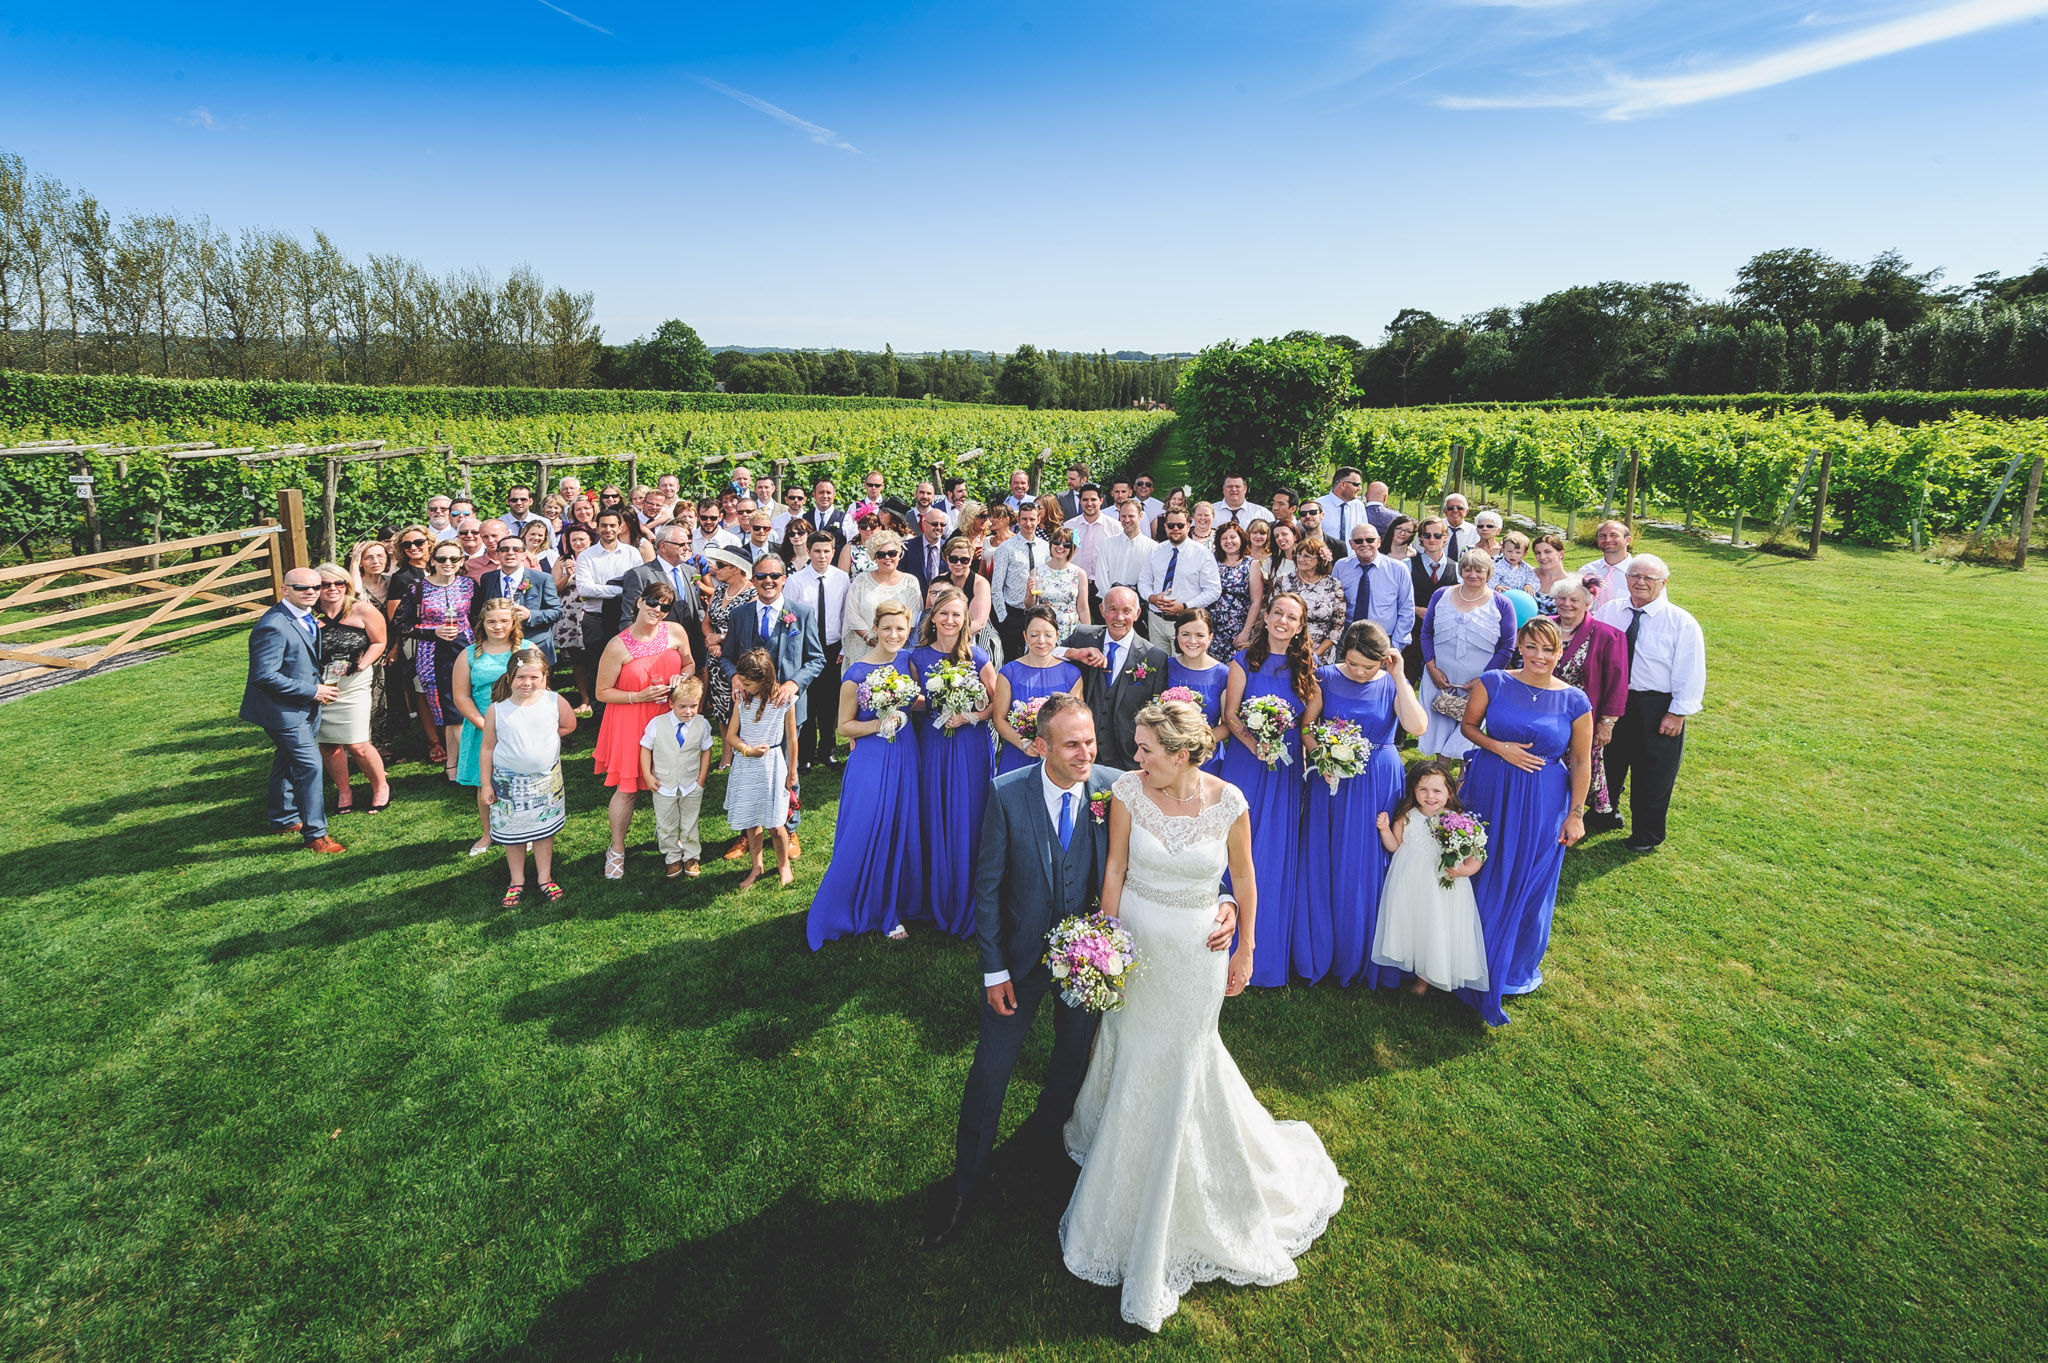 Llanerch Vineyard Wedding Photography August 2014 1